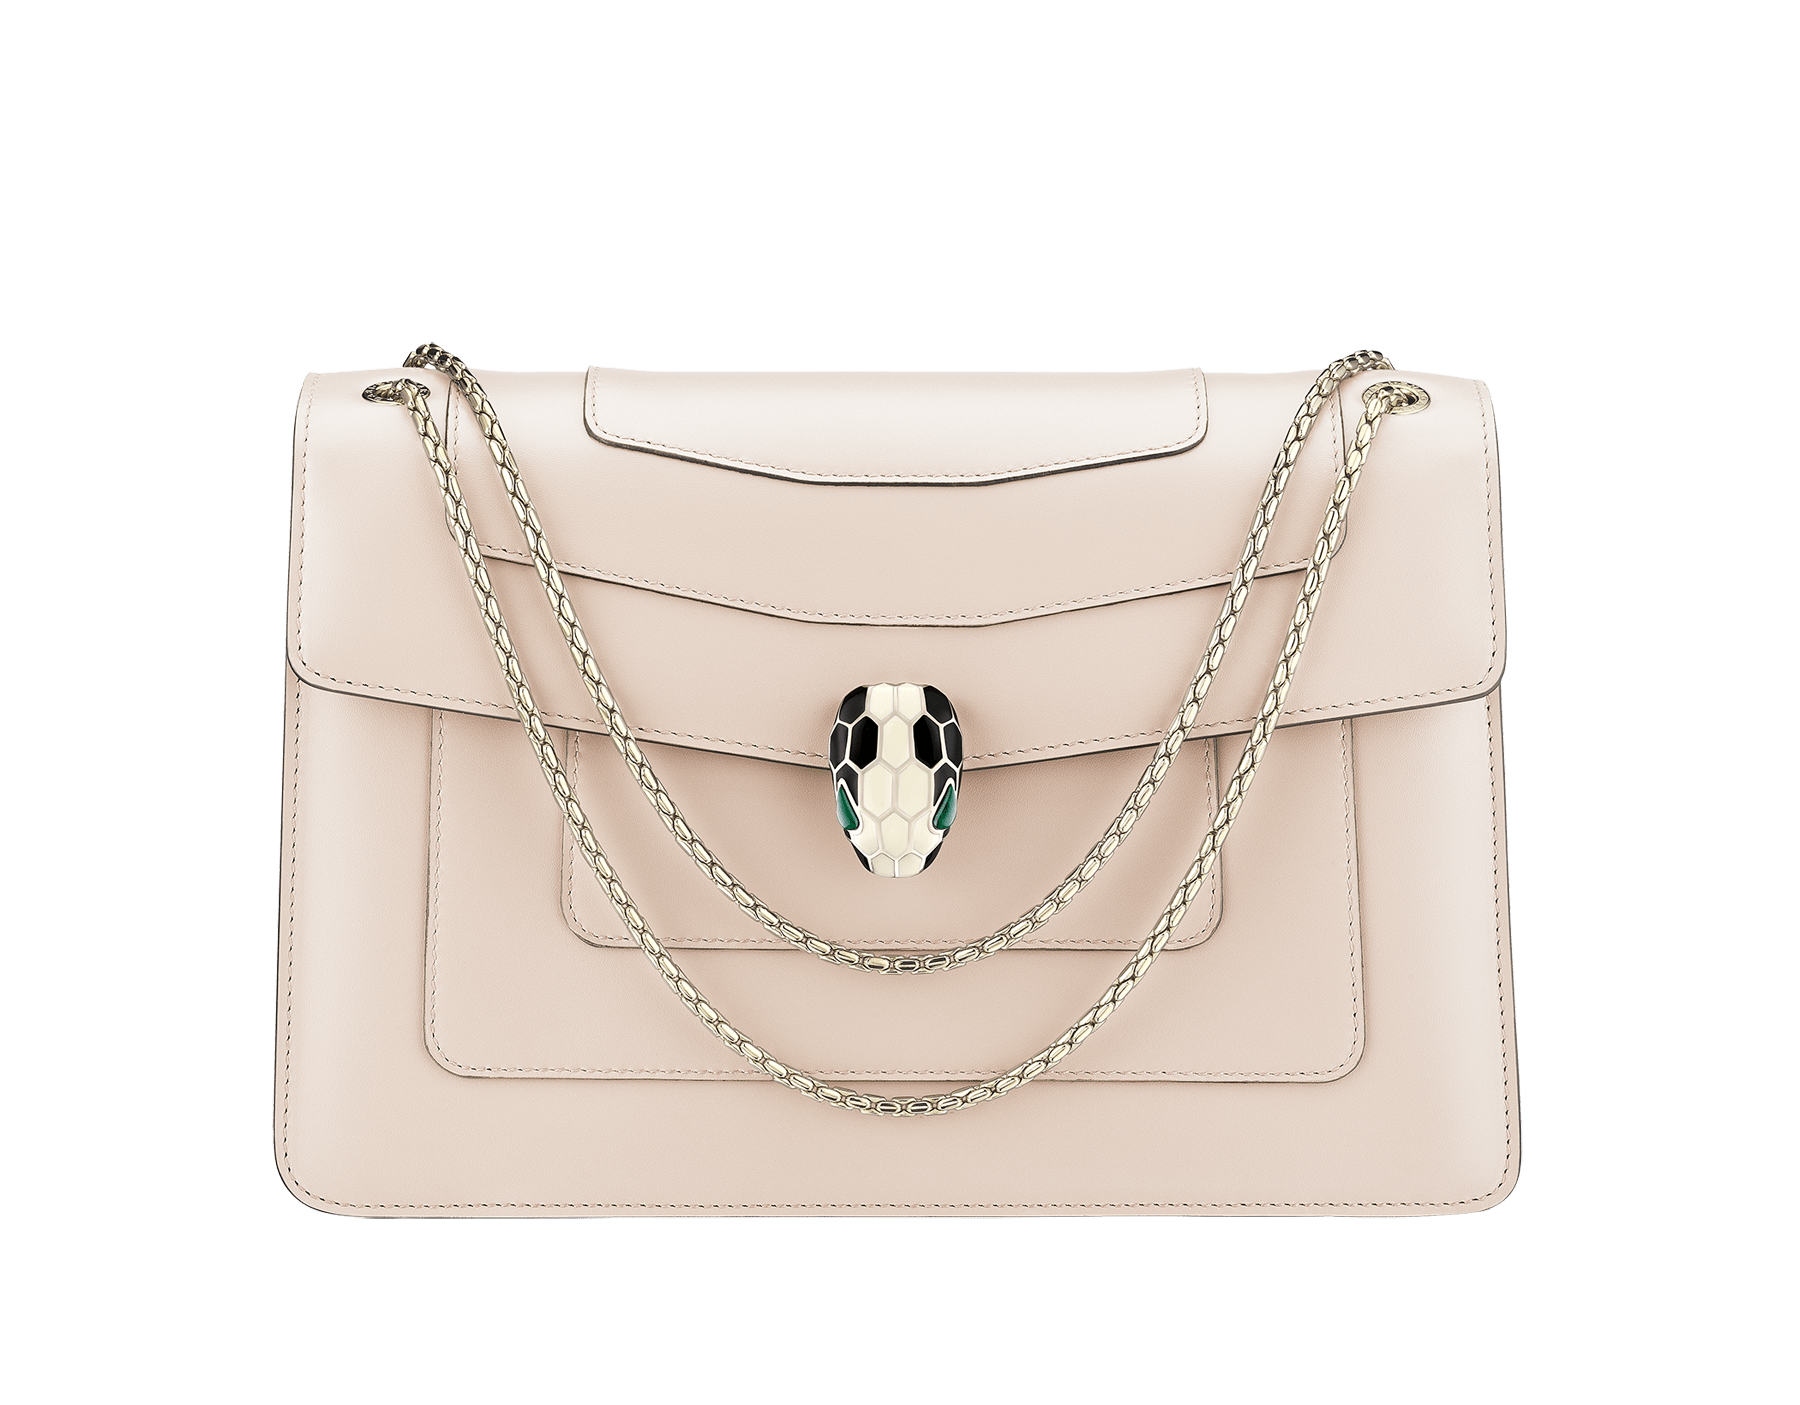 """""""Serpenti Forever """" shoulder bag in carmine jasper calf leather. Iconic snakehead closure in light gold plated brass enriched with black and white enamel and green malachite eyes 521-CLd image 1"""